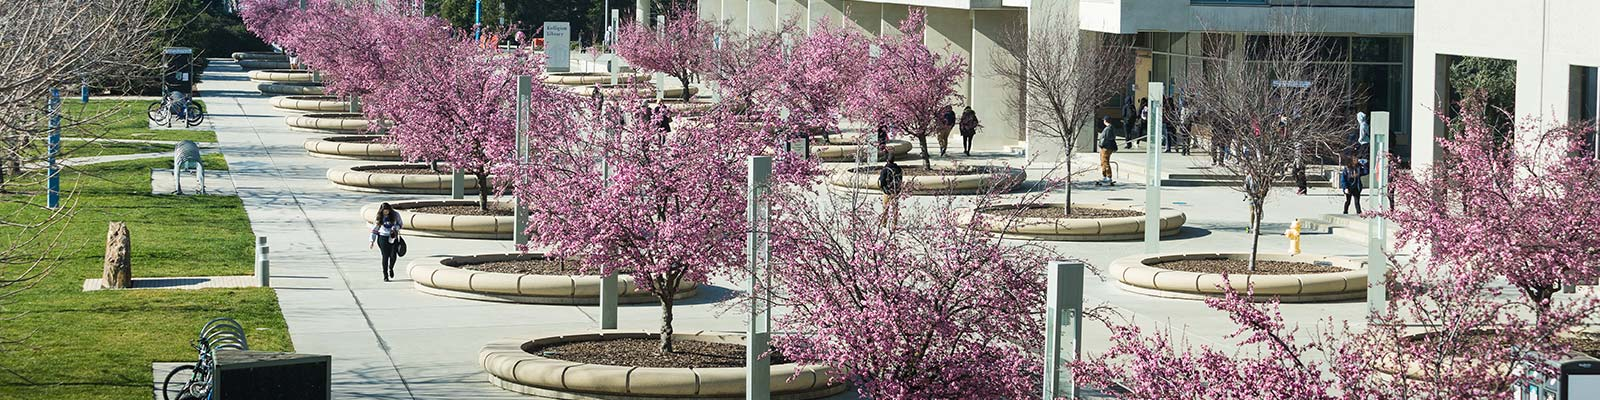 uc merced campus in the fall with cherry blossoms